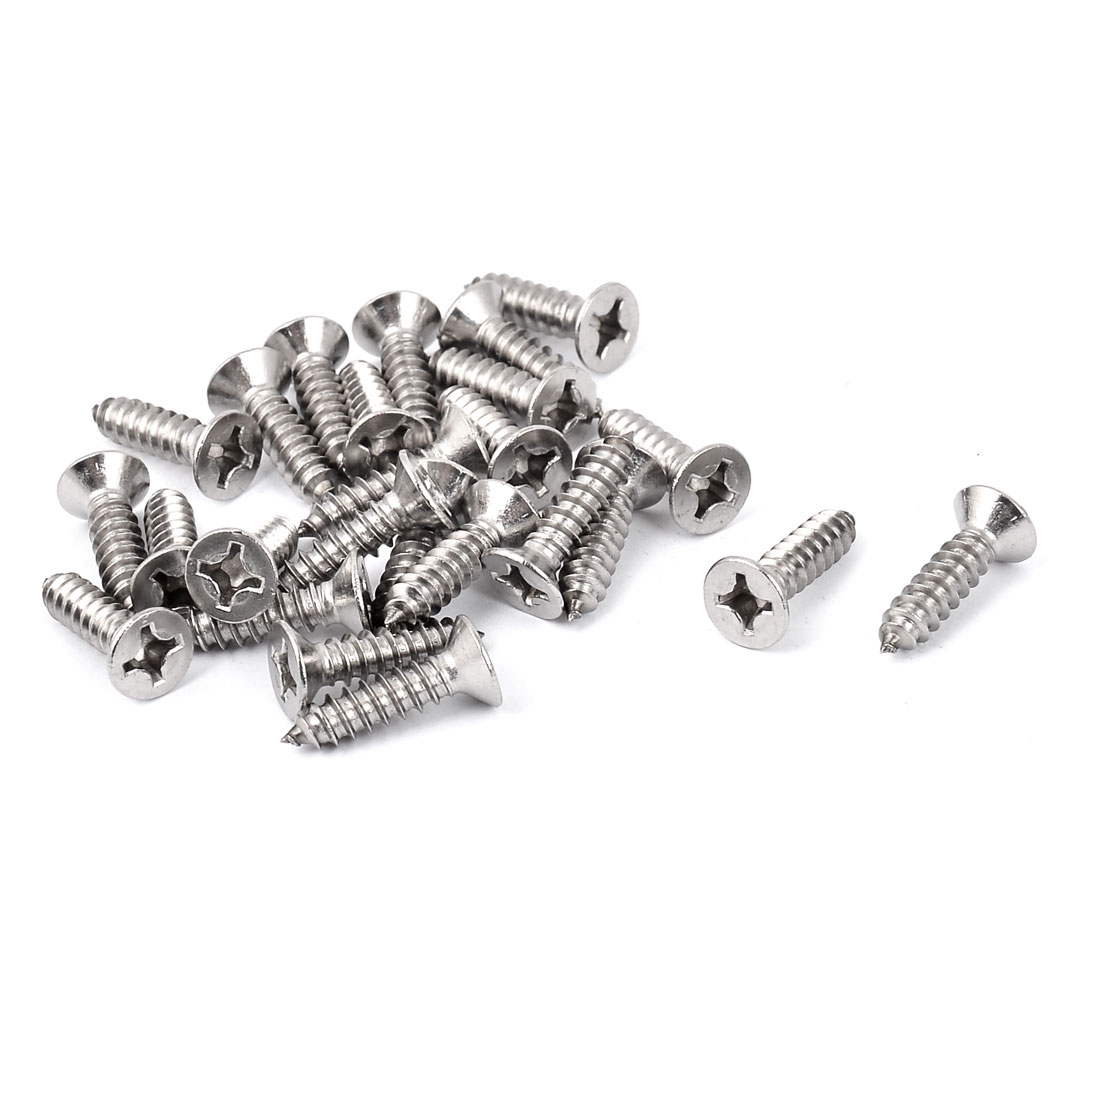 M5.5 x 22mm Phillips Flat Head Self Tapping Screw Fasteners 25 Pcs